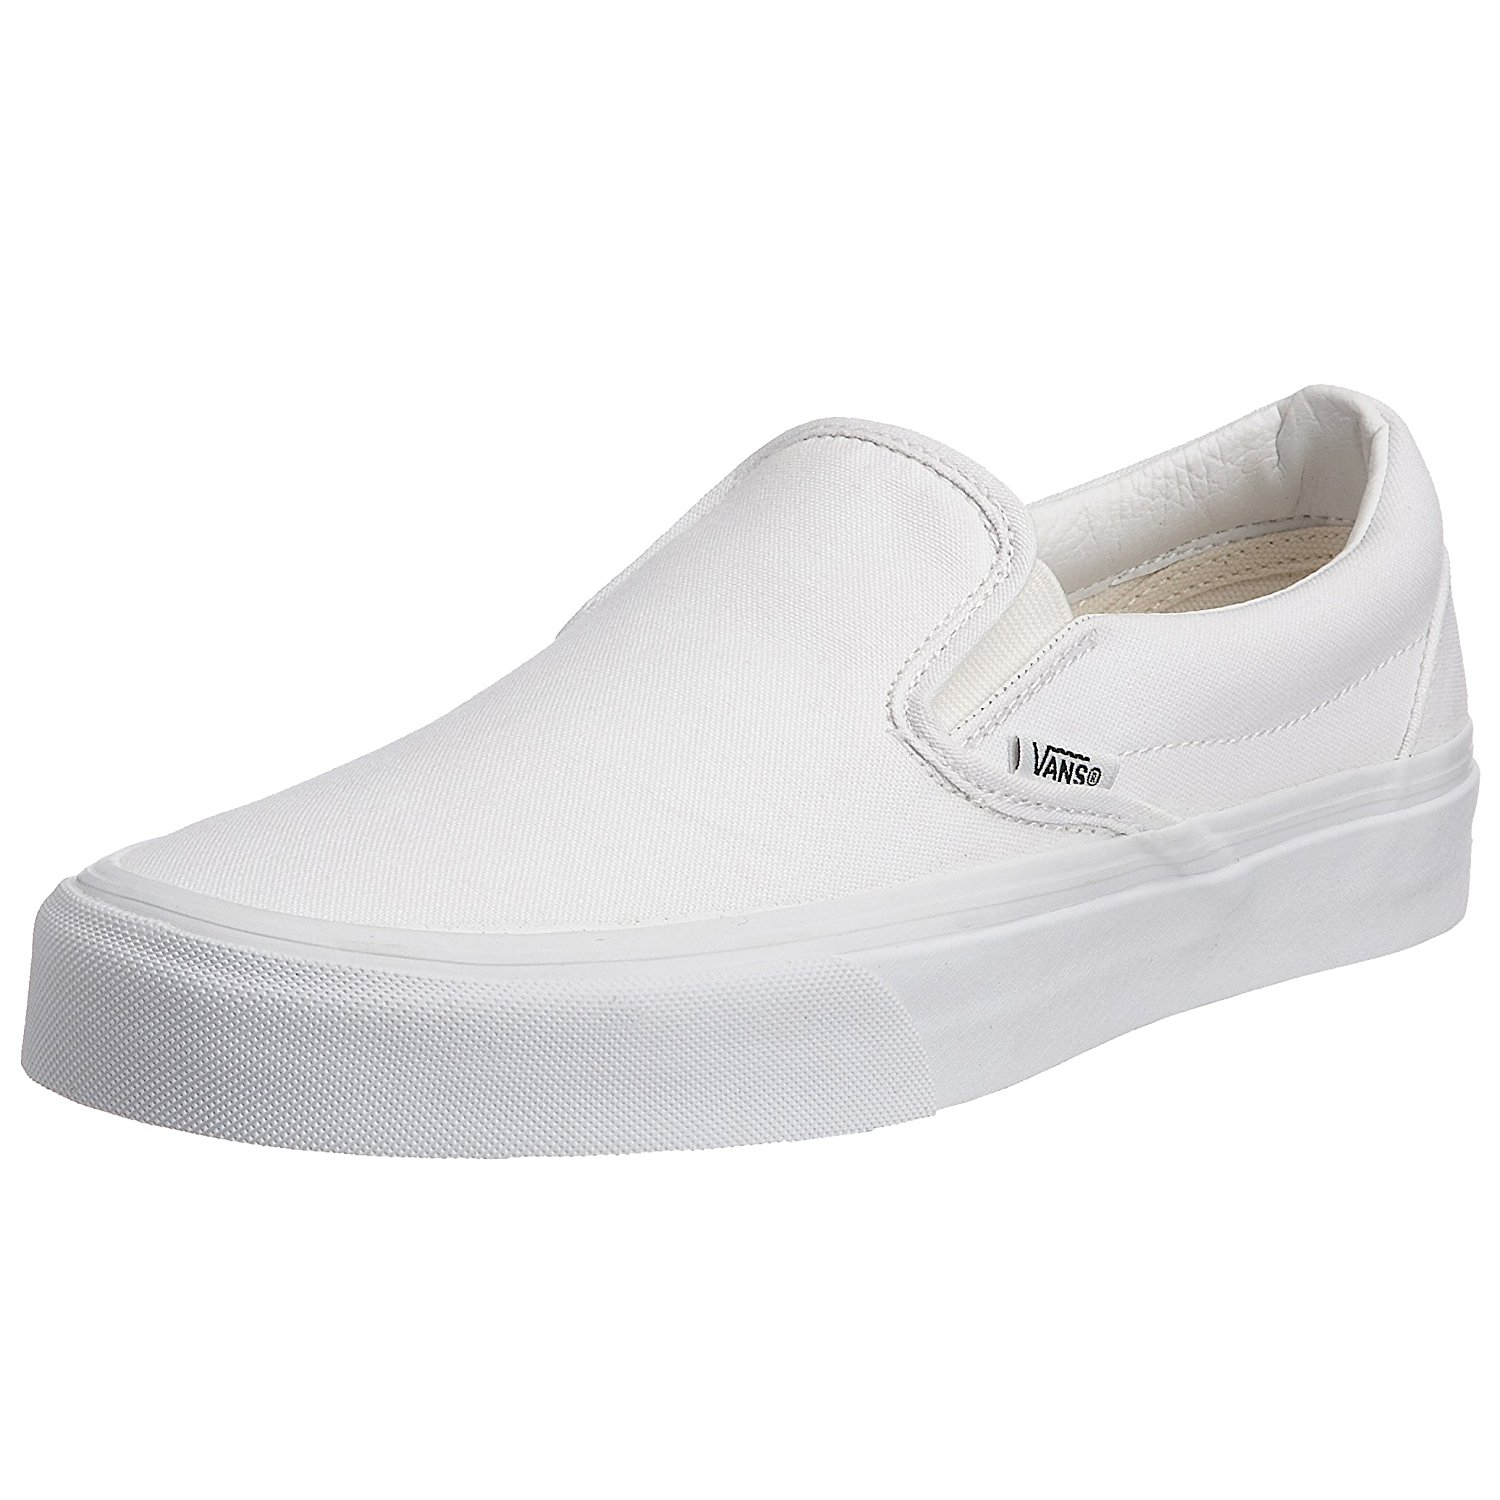 Vans Slip on Skate Shoe | Vans Shoes at Kohls | White Van Slip Ons